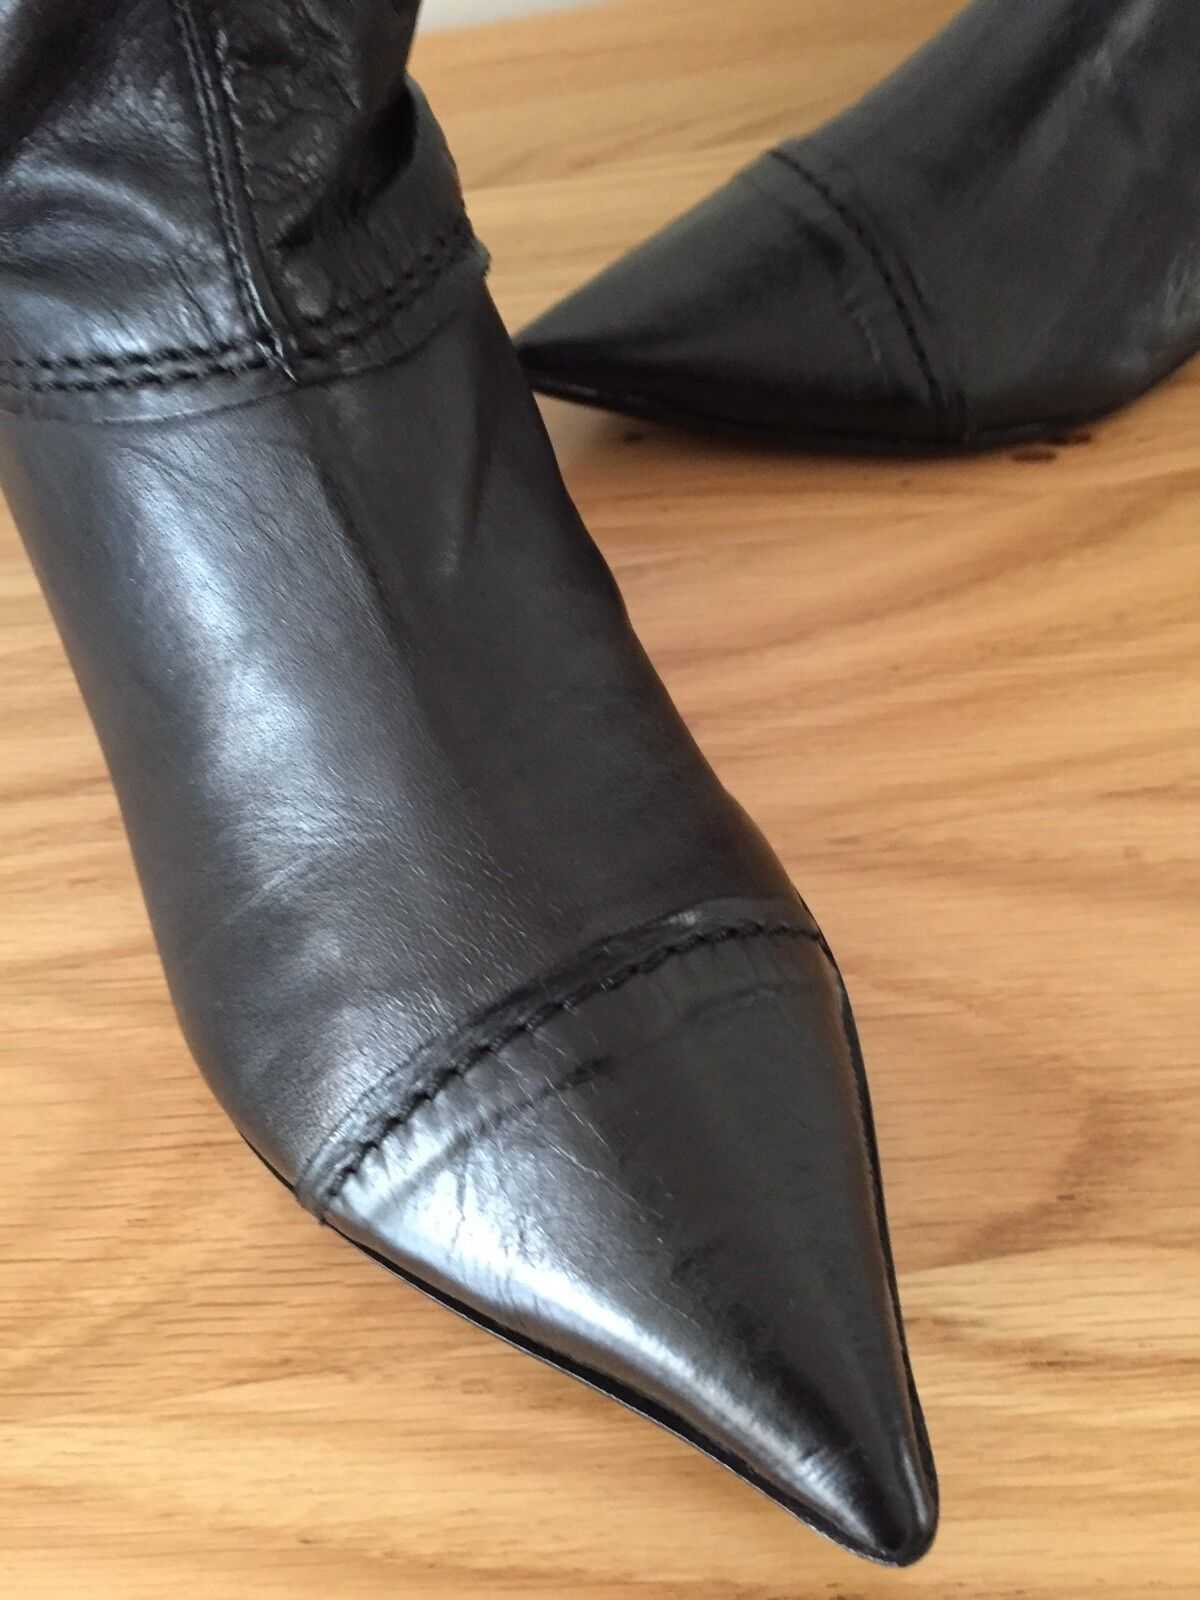 Gucinari Lady Boots Black Leather, 3cm heel,     size 7 40